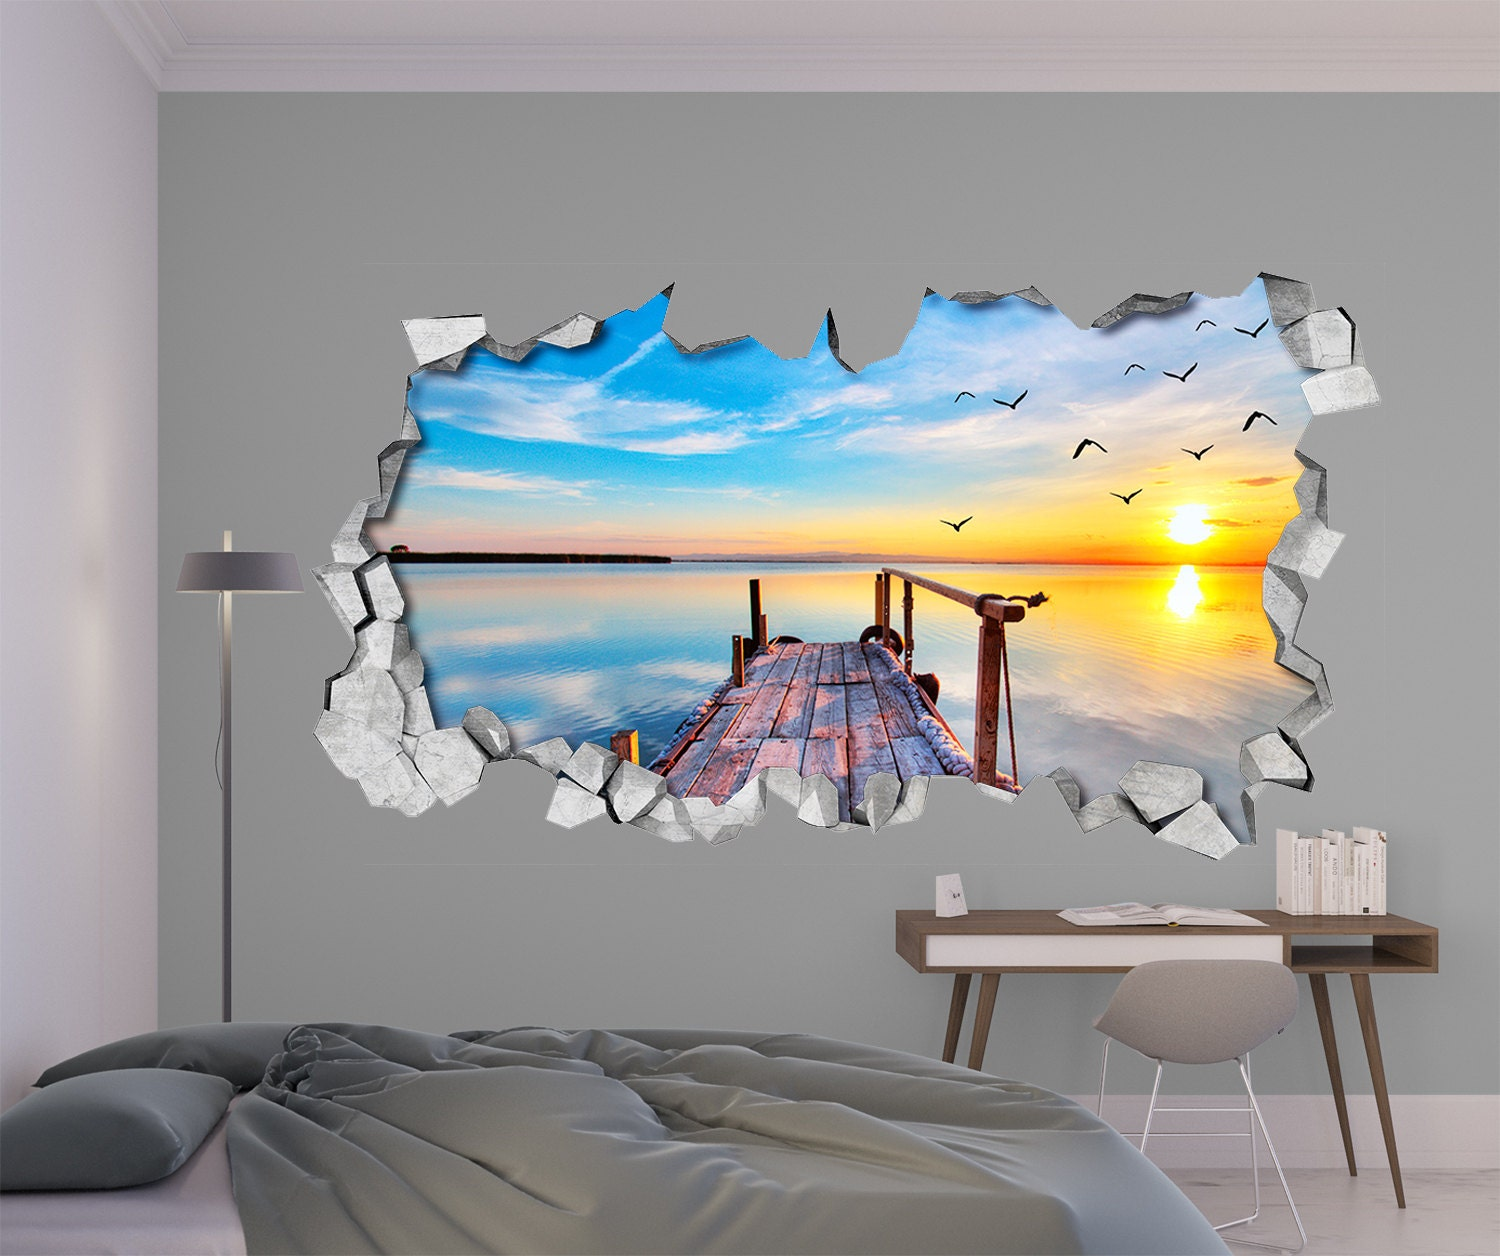 Wallpaper Decal: Broken Wall Decal 3d Wallpaper 3d Wall Decals 3d Printed